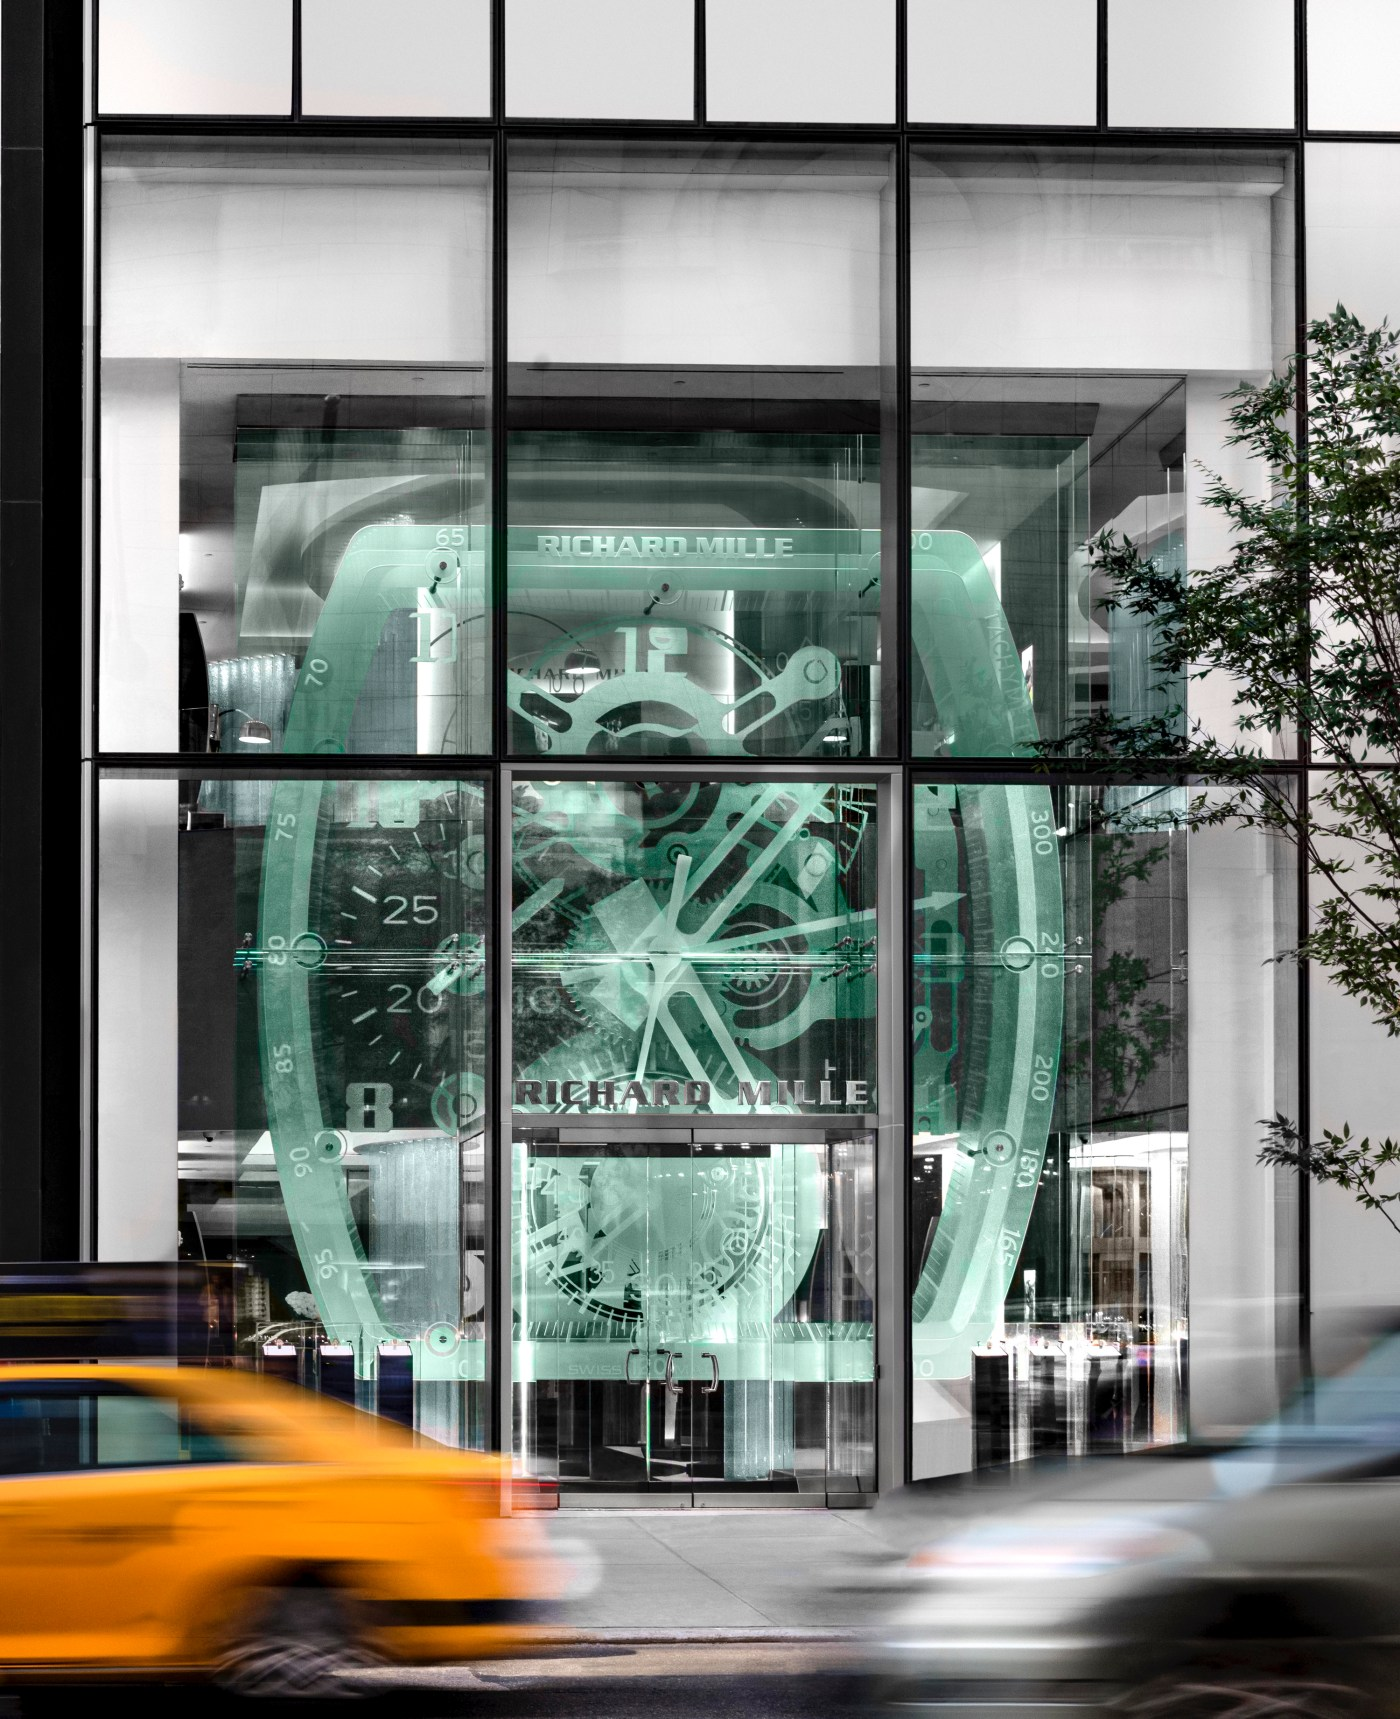 Richard Mille New York City boutique